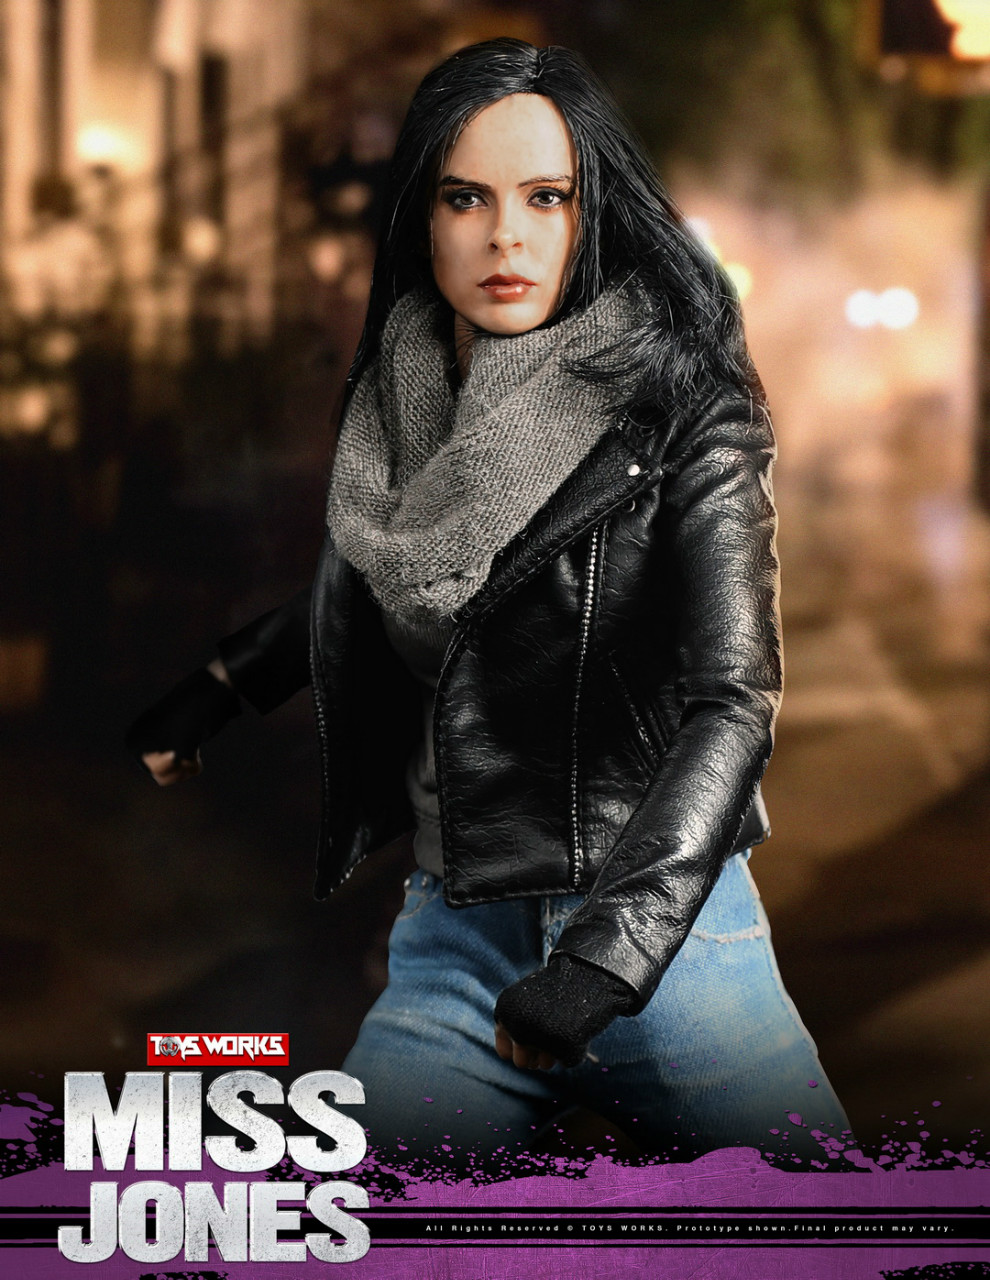 tv - NEW PRODUCT: TOYS WORKS New: 1/6 Miss Jones Miss Jones can move TW007 19163610